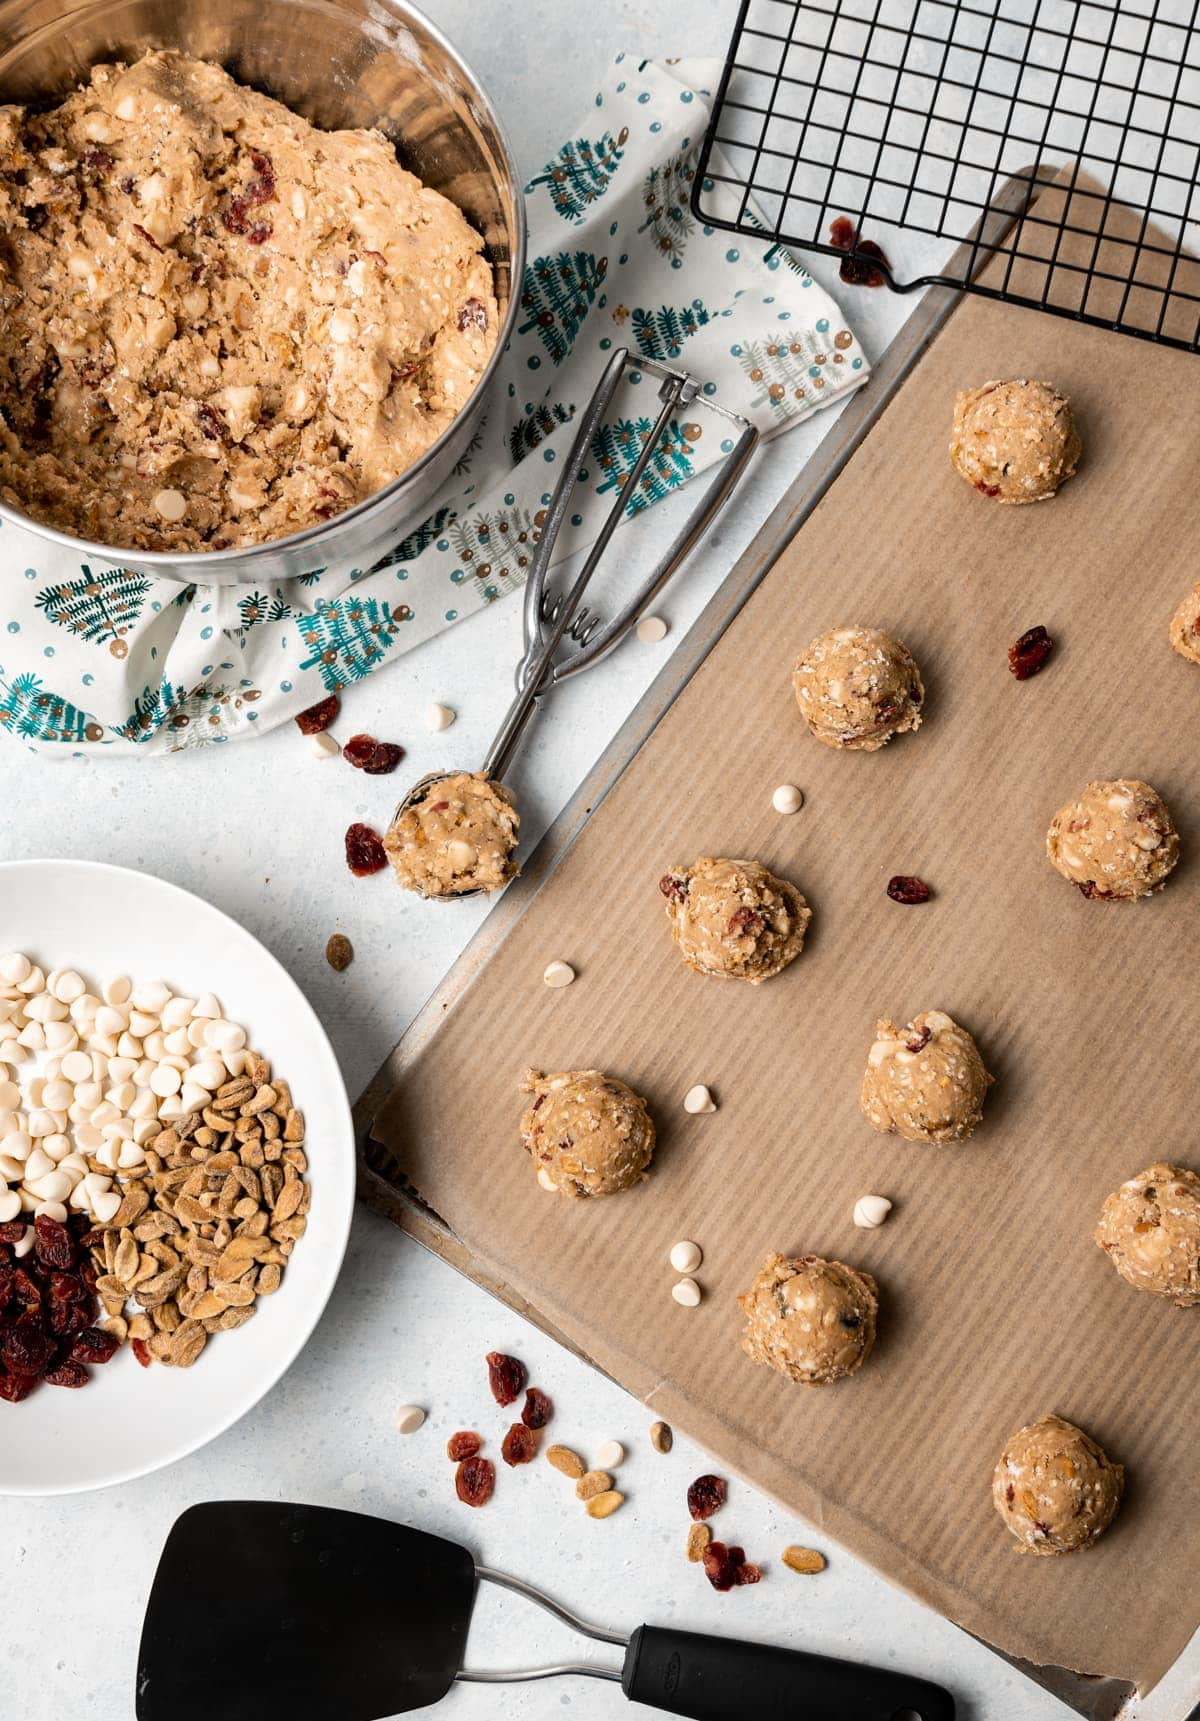 oatmeal cookie dough on a tray some dough in a stainless bowl some dough in a cookie scoop bowl of white chocolate chips cranberries and pistachios